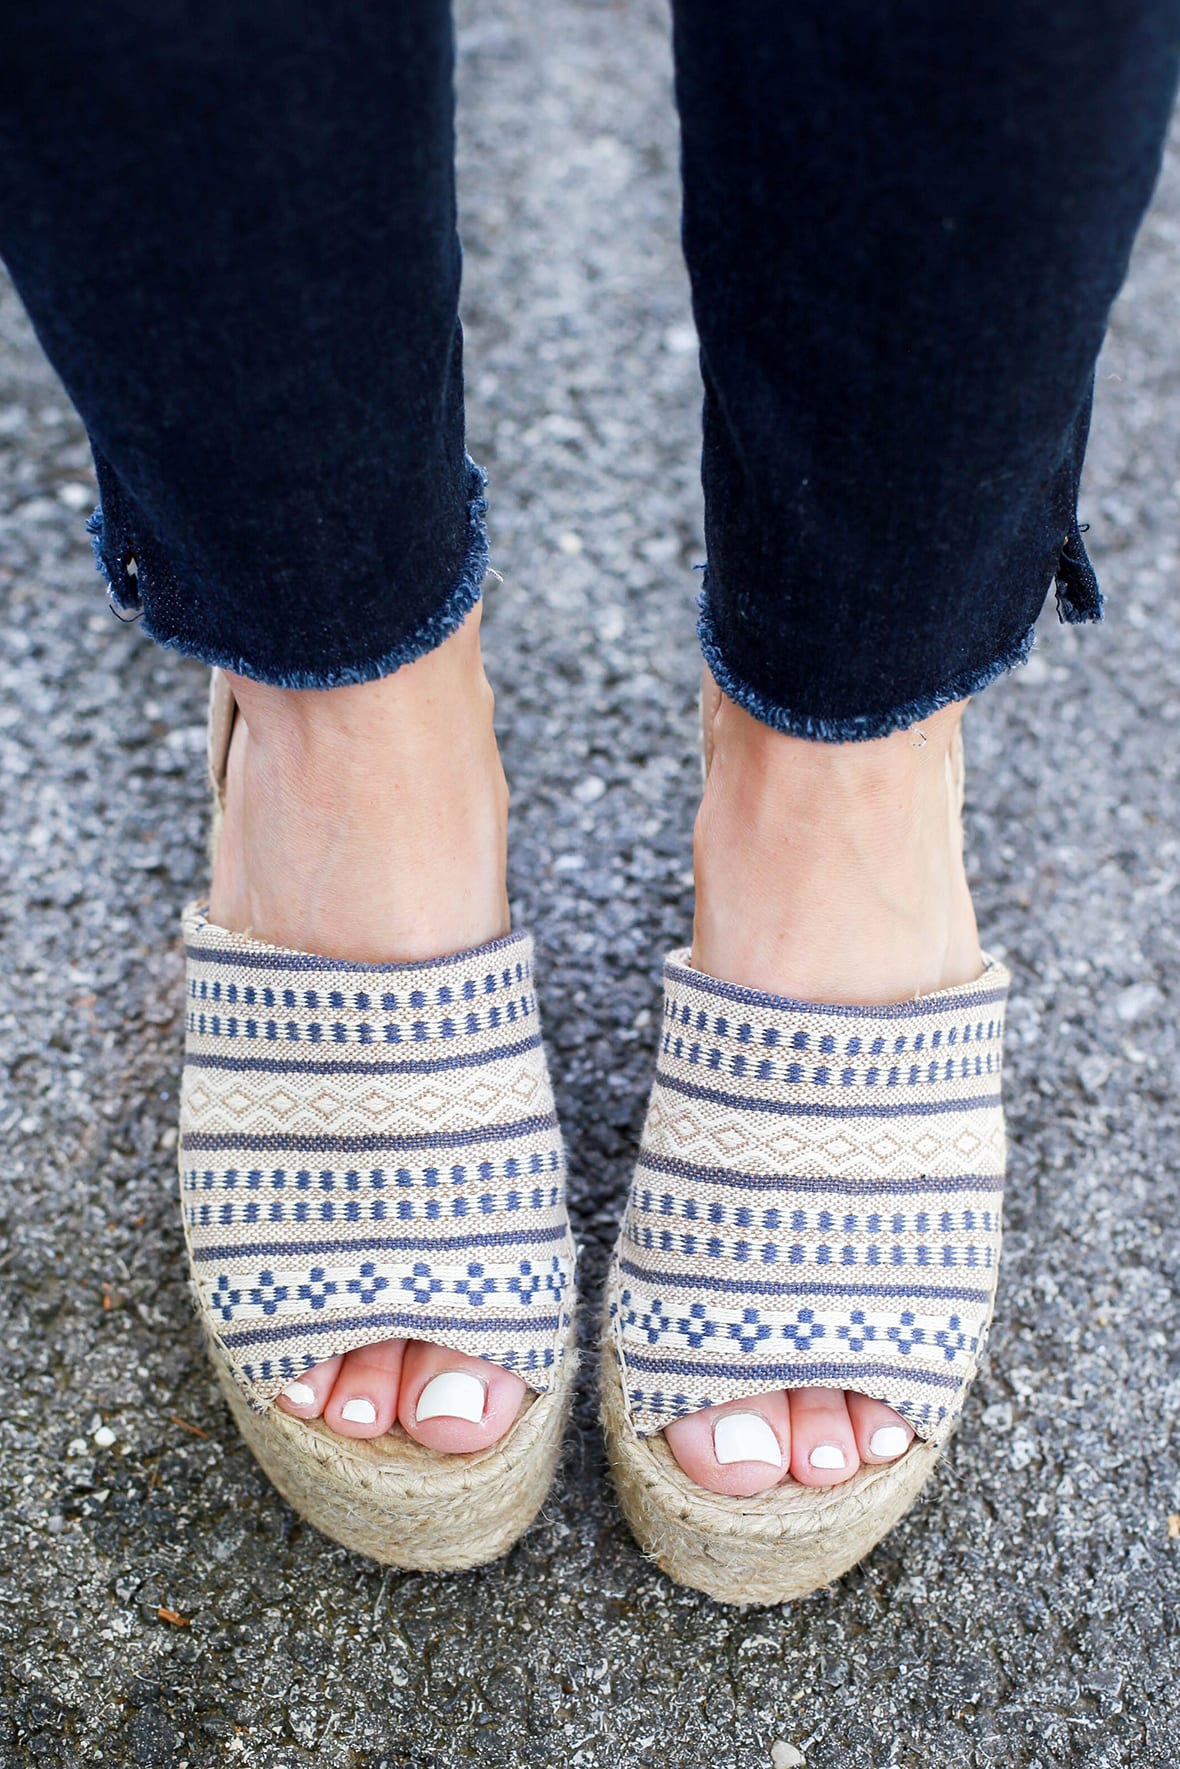 Summer Espadrille Sandals And White Lace Top Poor Little